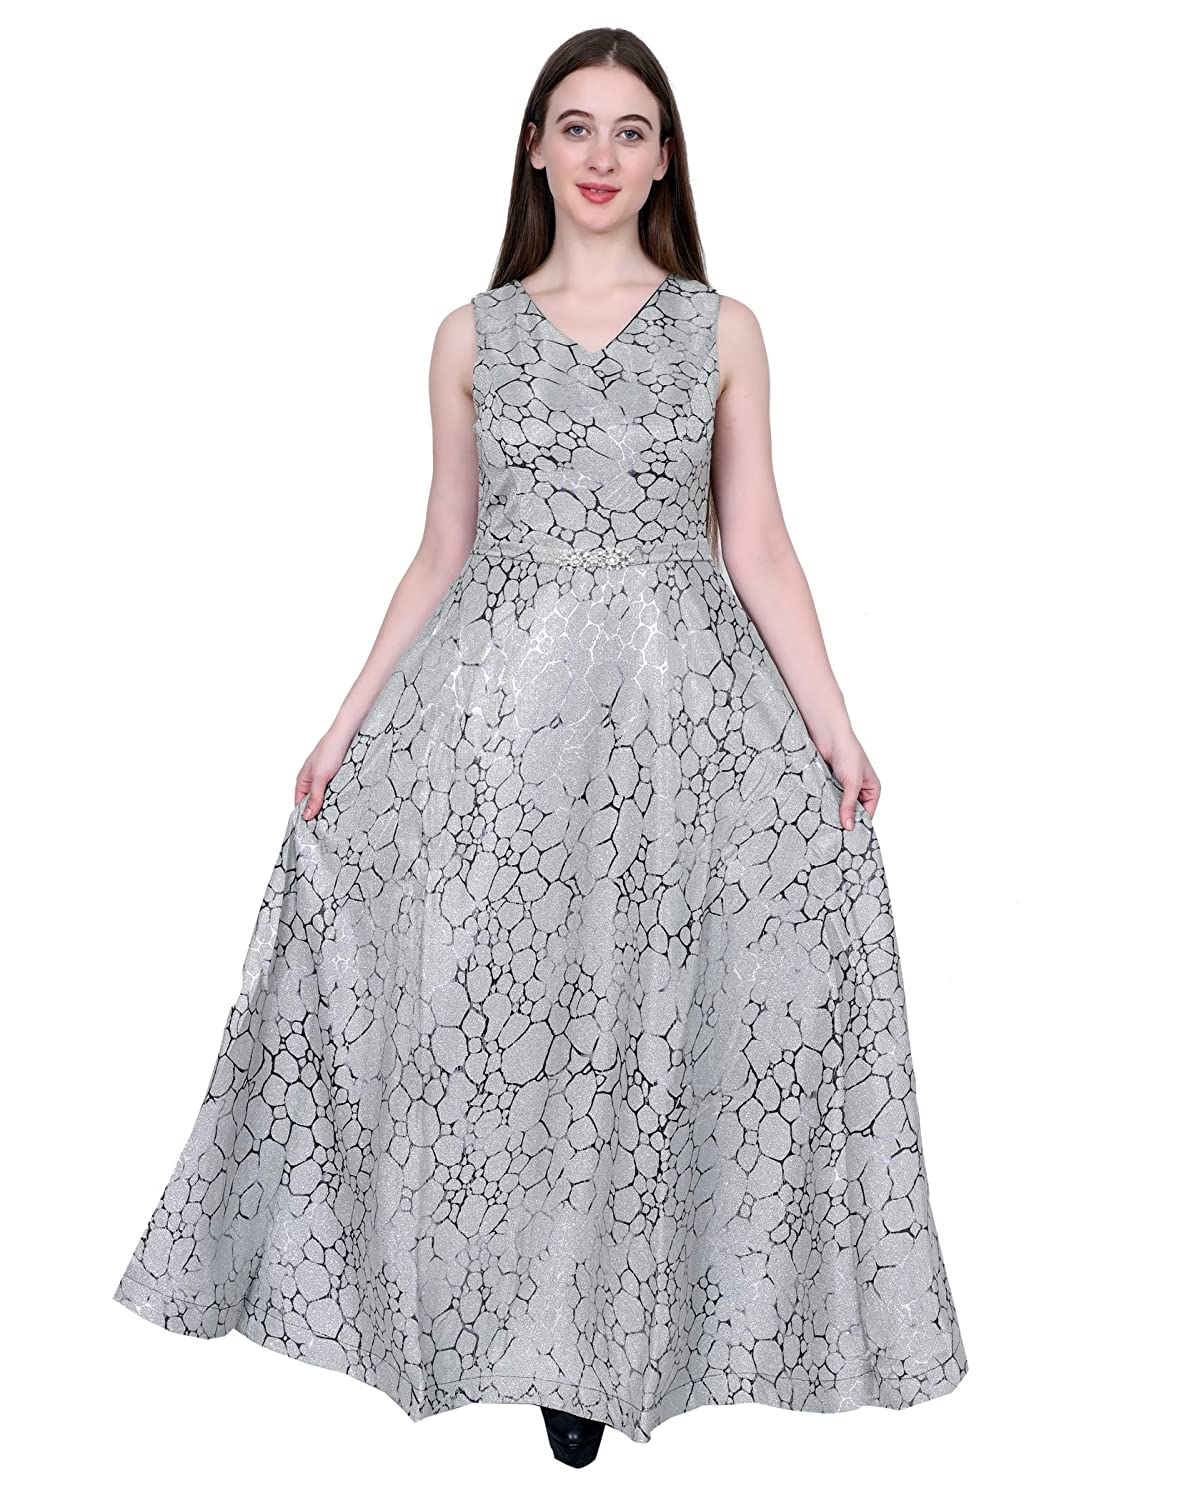 great fit save up to 80% exclusive deals Buy Gorgeous Girl's Only Silver Imported Fabric Sleeveless Gown ...